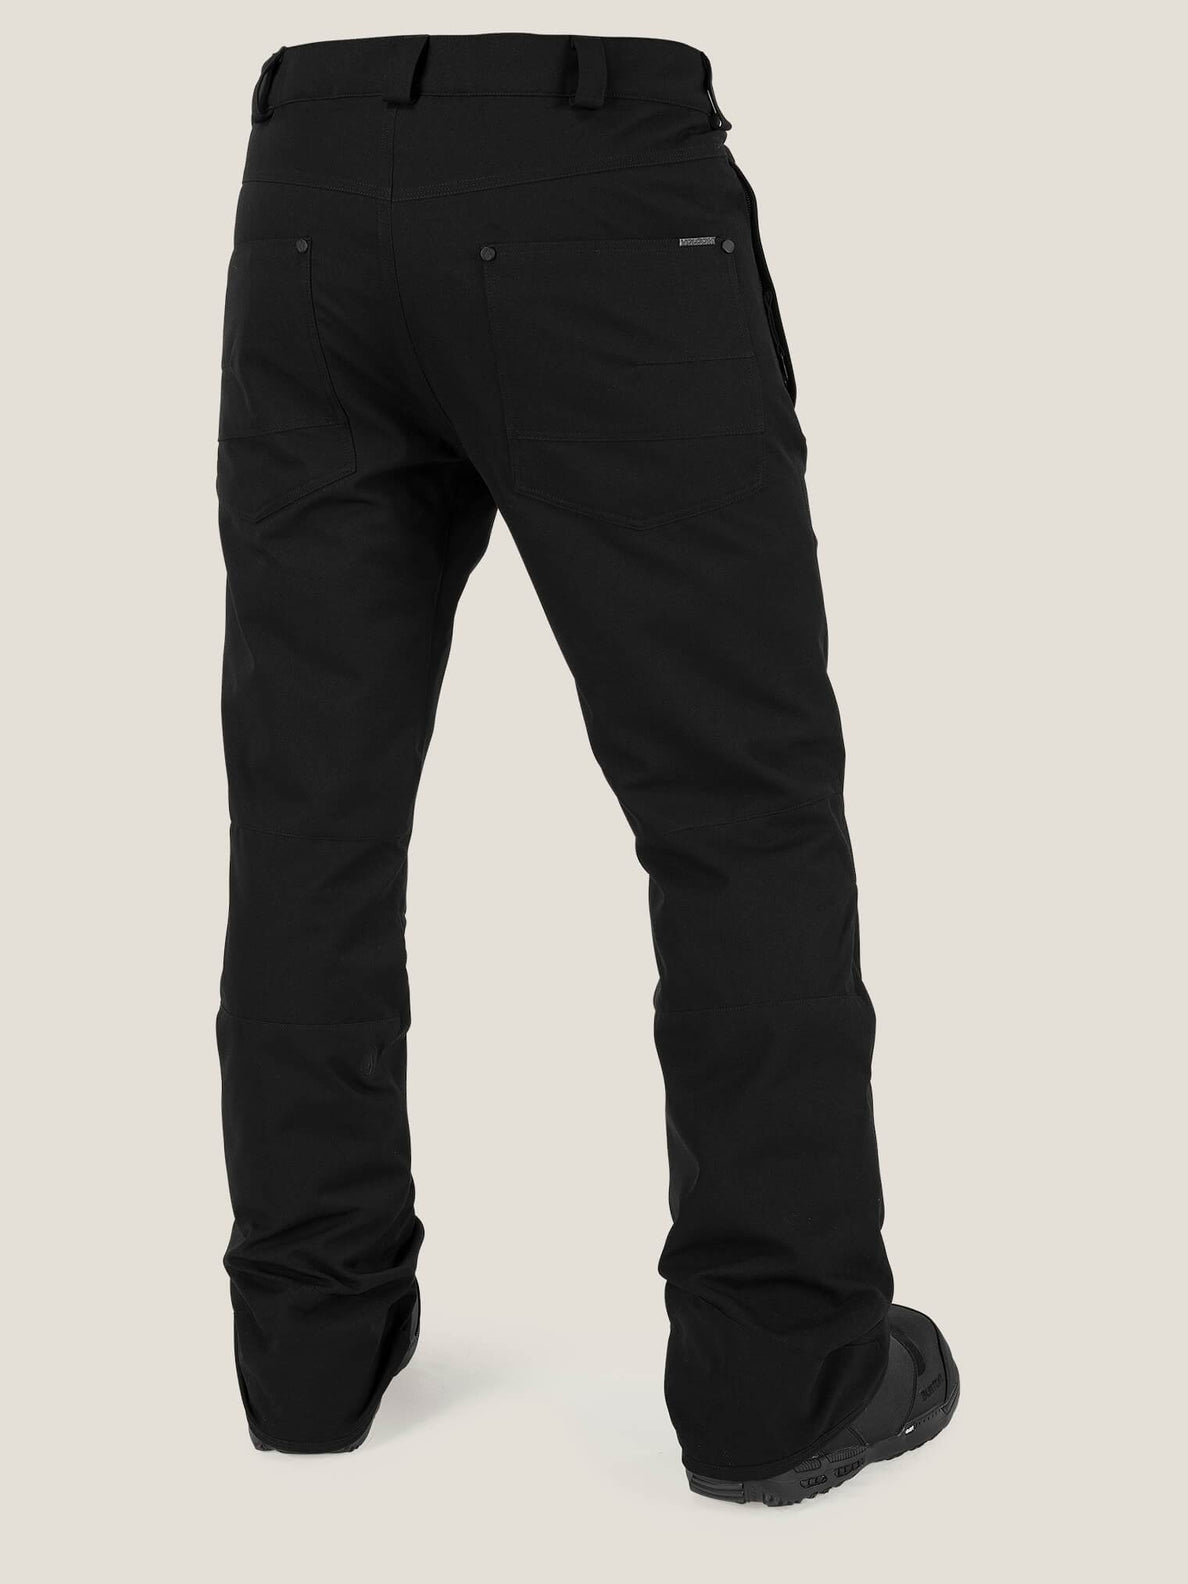 Klocker Tight Pant In Black, Back View